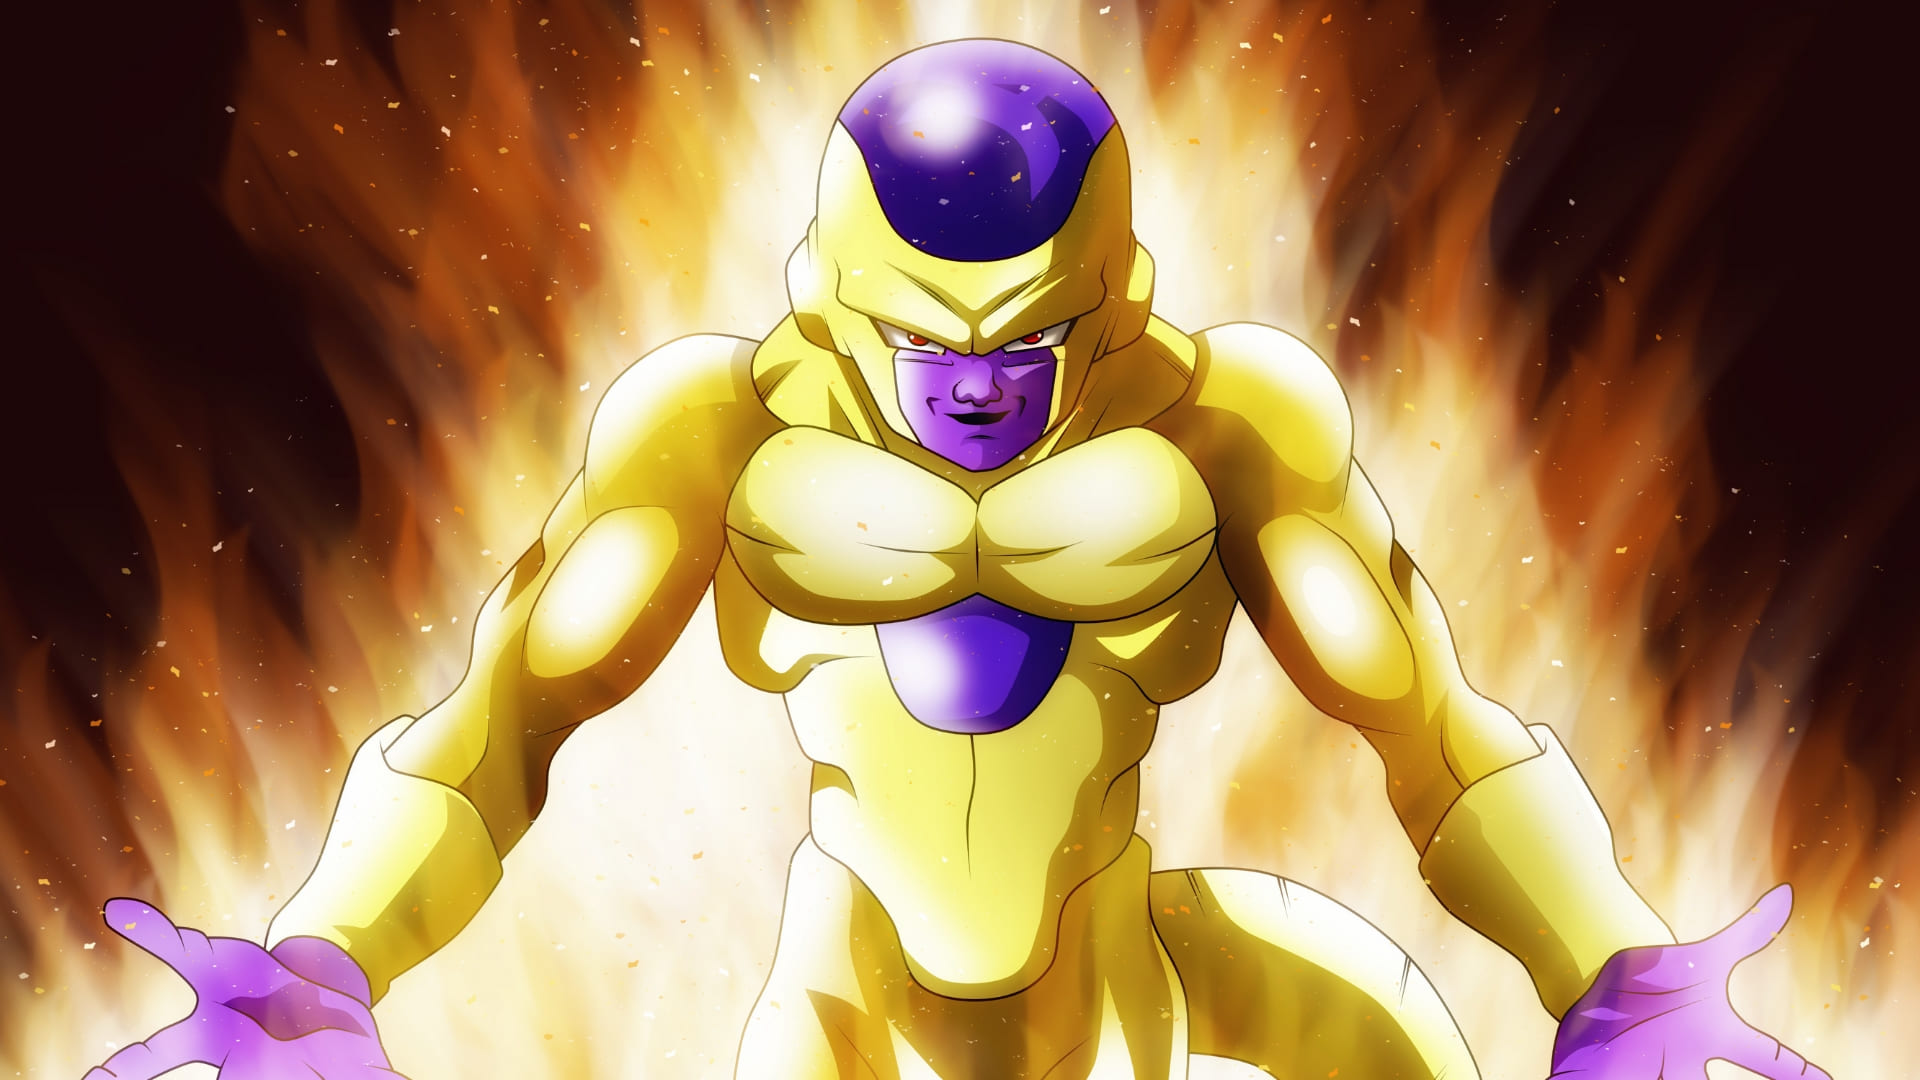 A Guide to Free Frieza Wallpaper